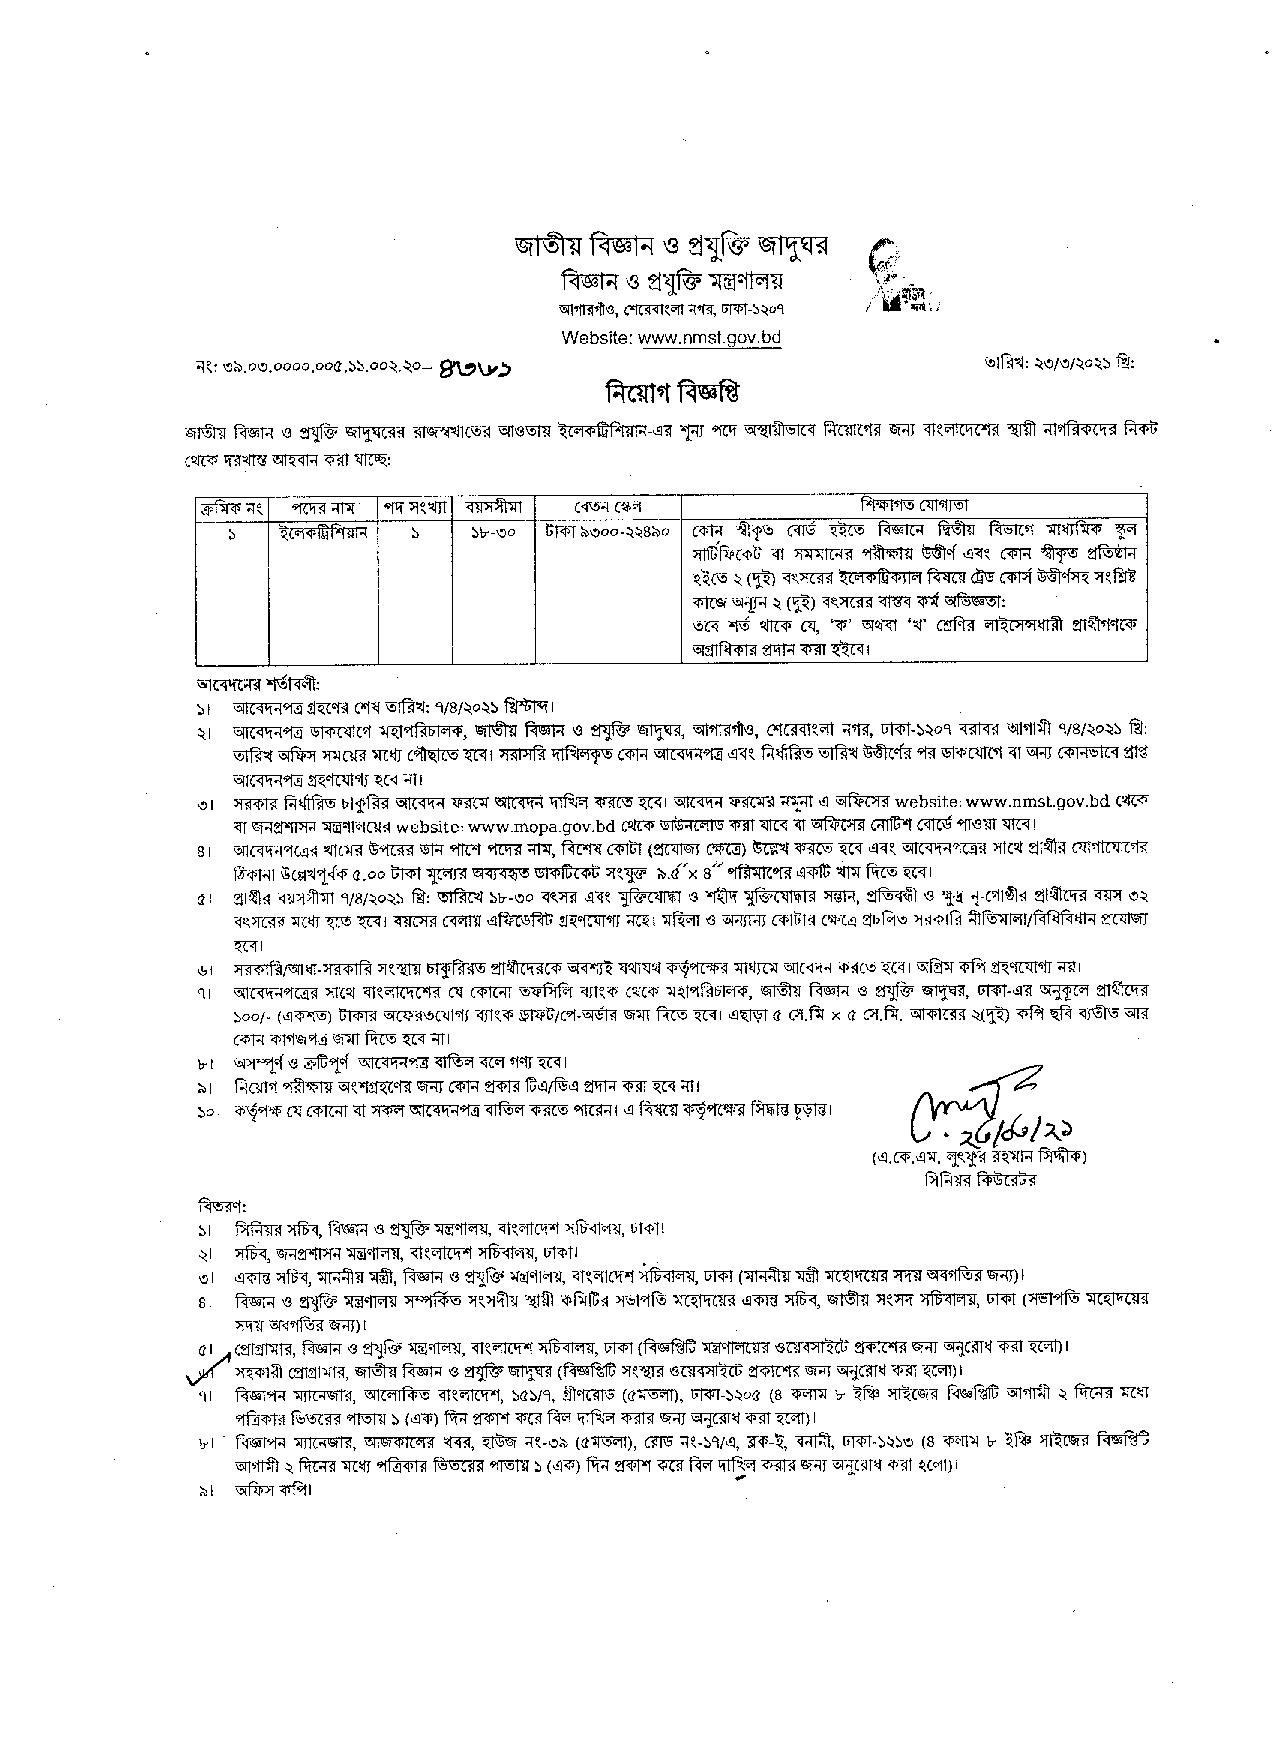 National Museum of Science and Technology Job Circular 2021